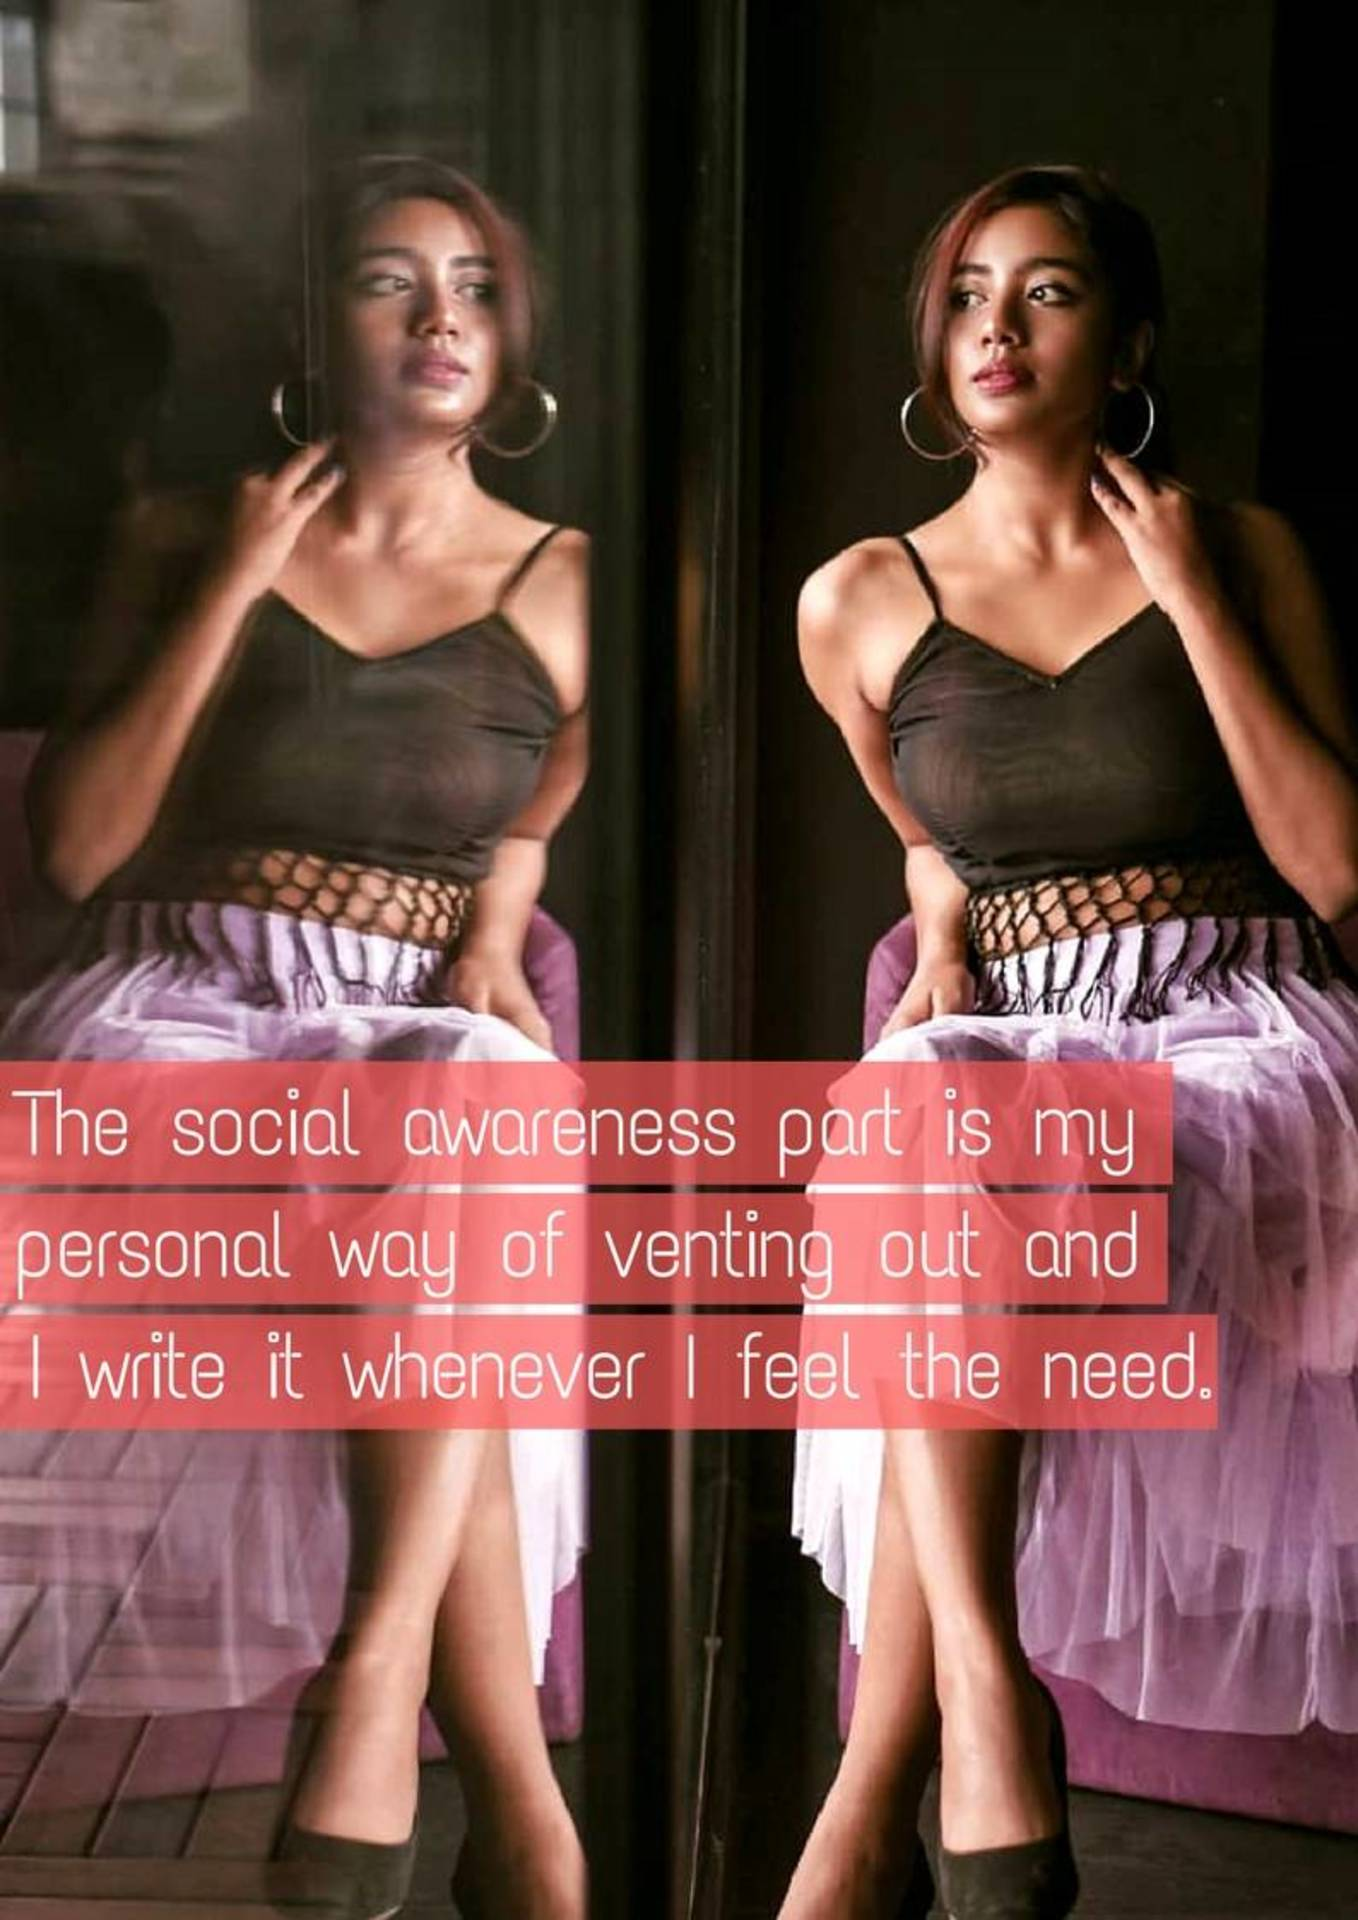 Winkl Blog - the social awareness part is my